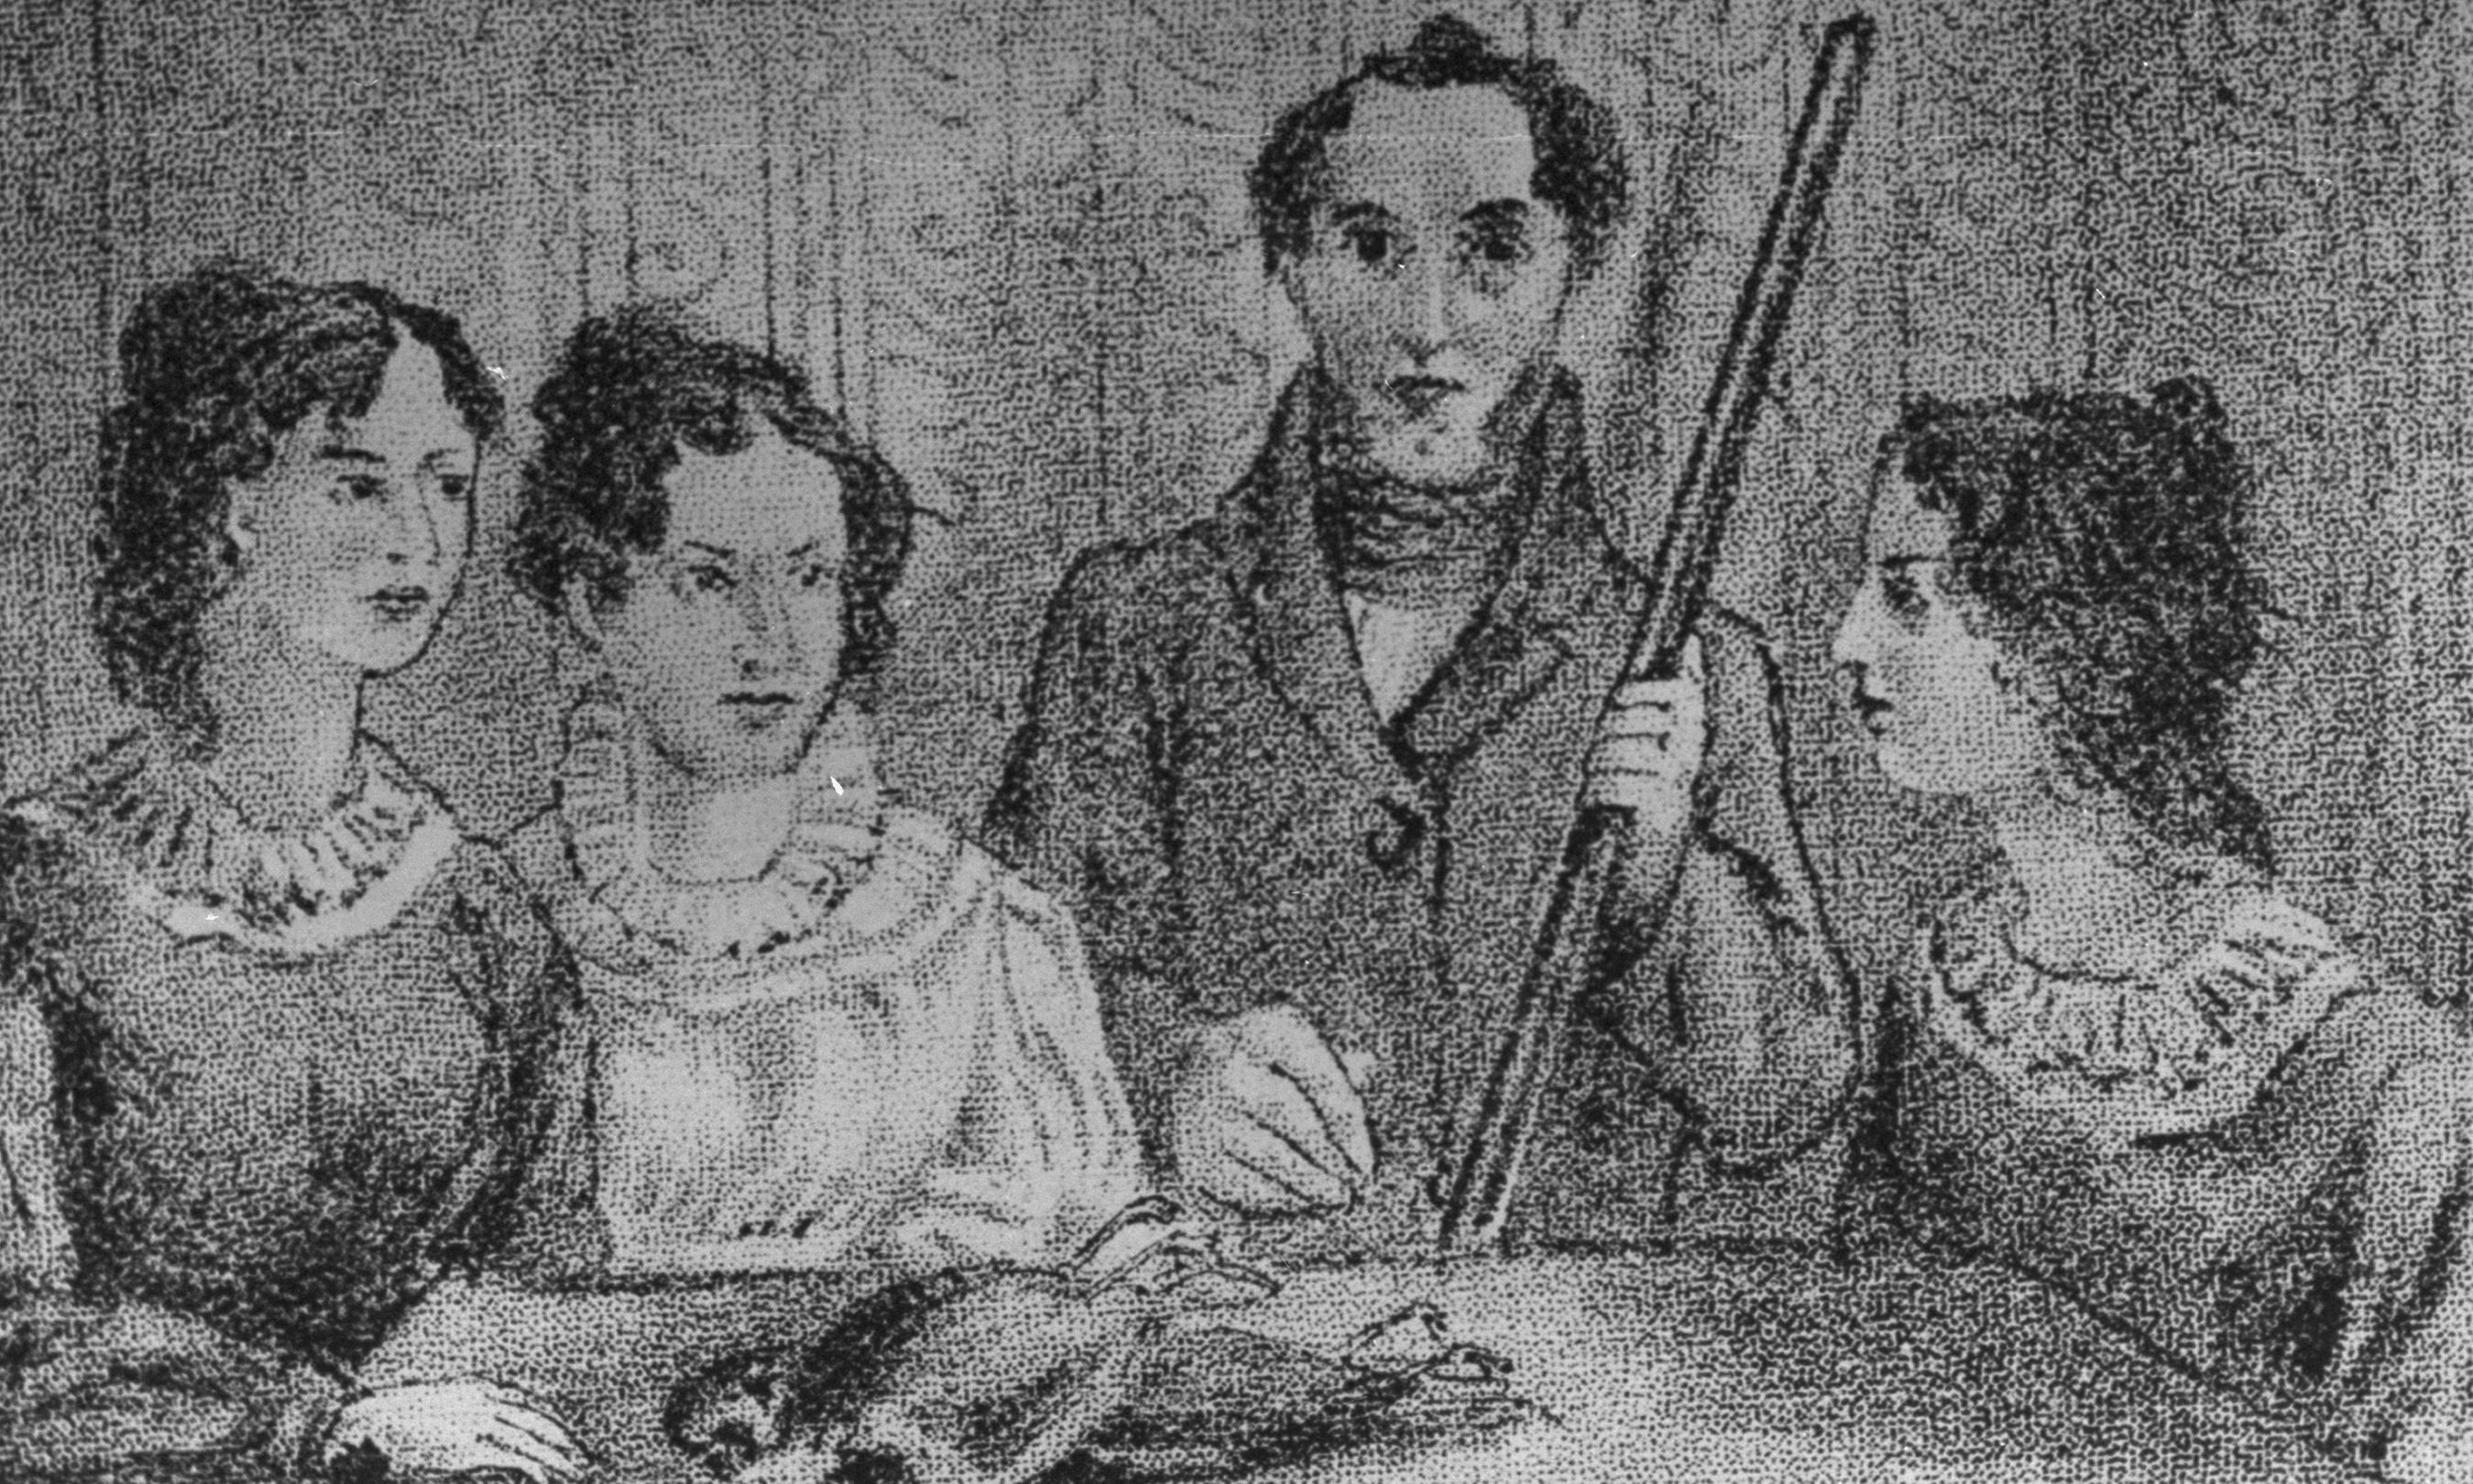 Revealed: smuggling past of the Brontë sisters' grandfather